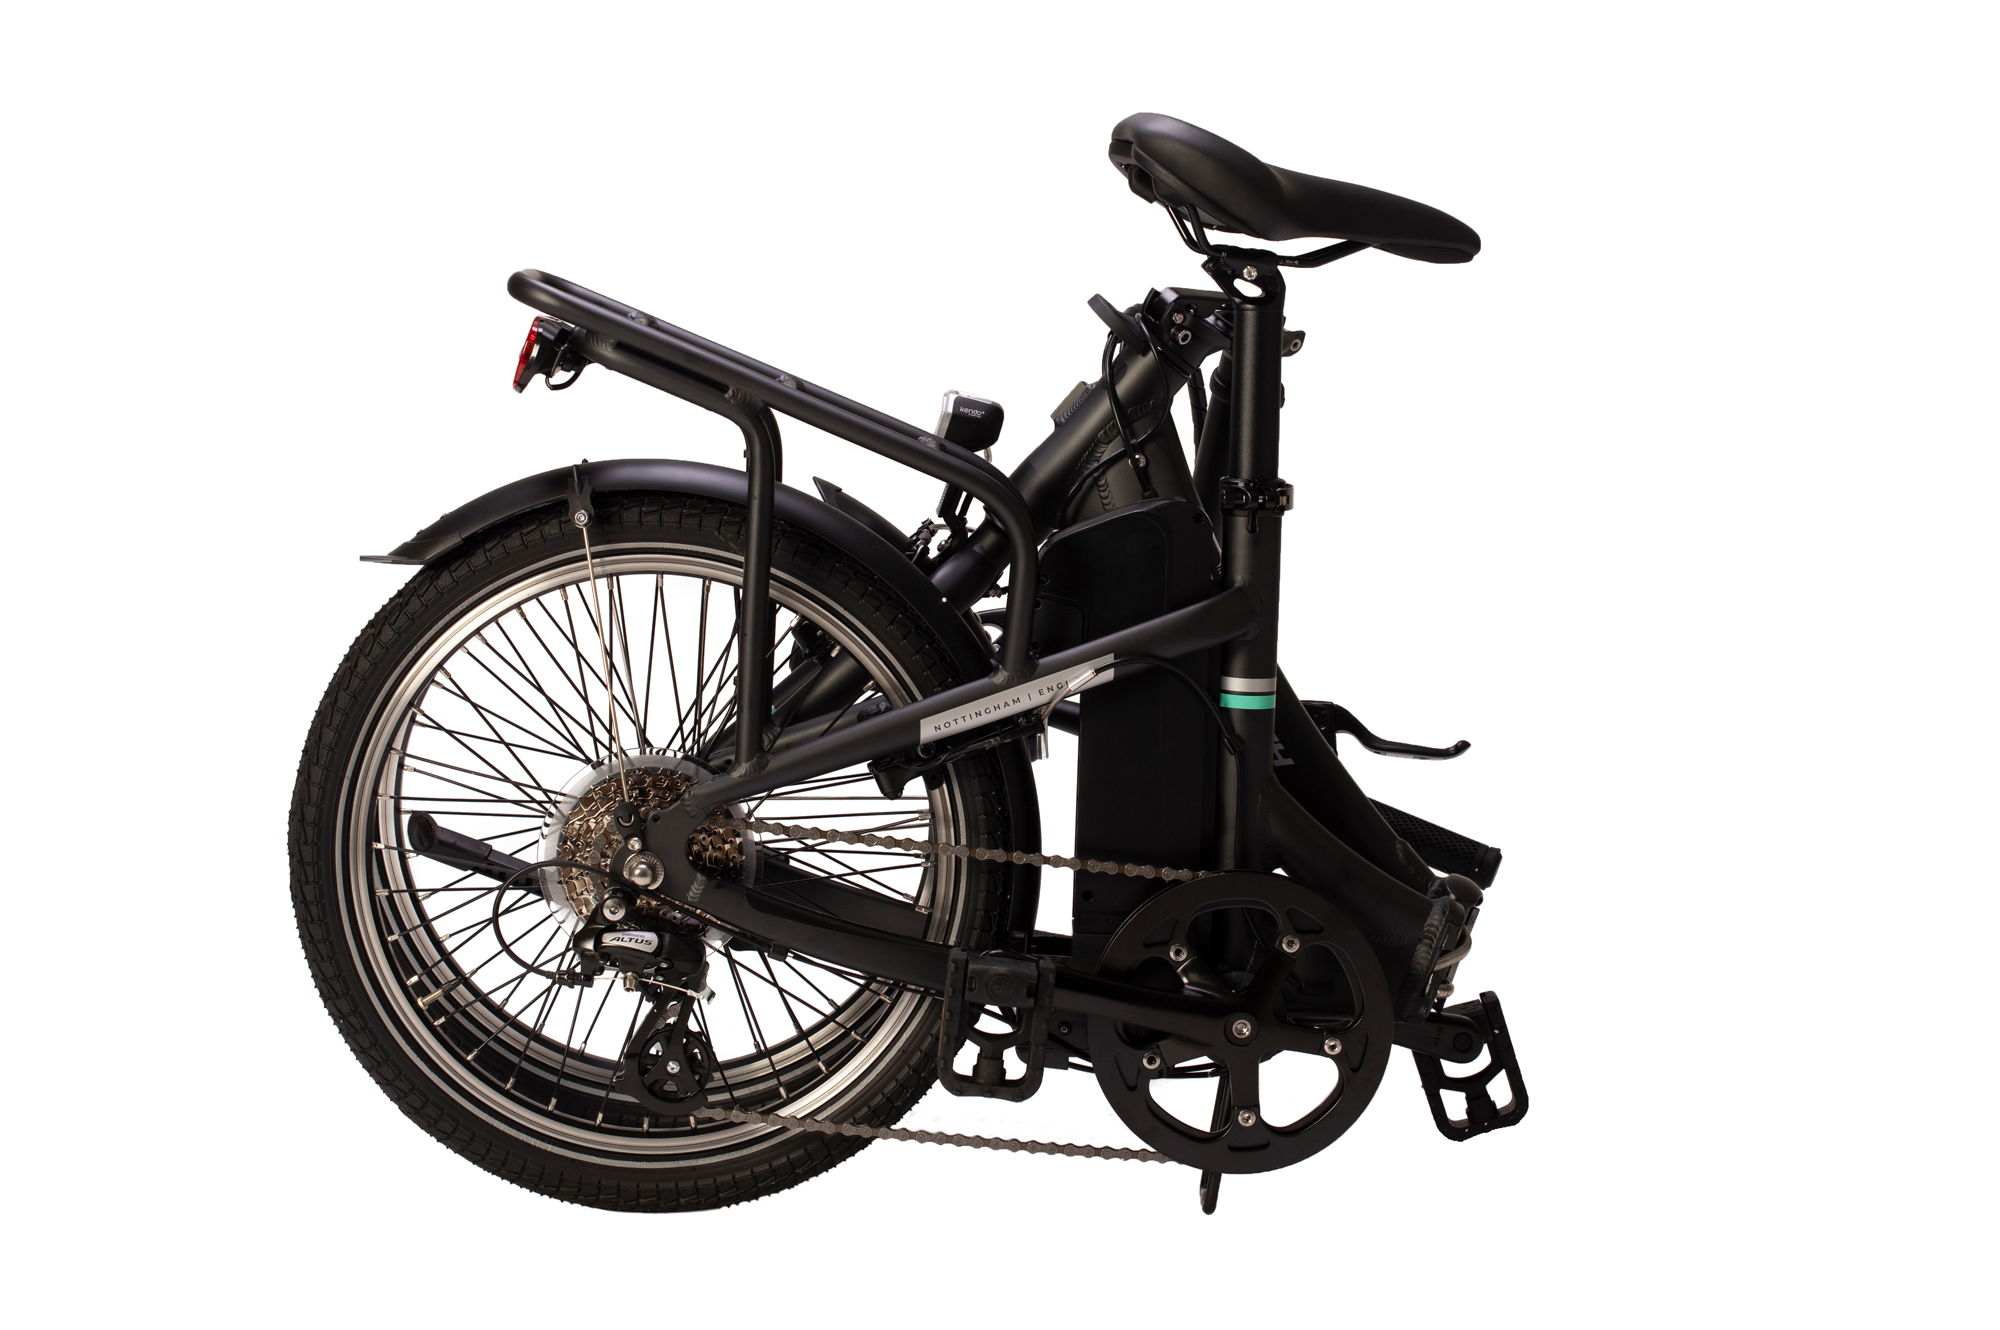 Folded Raleigh Stow-E-way folding electric bike